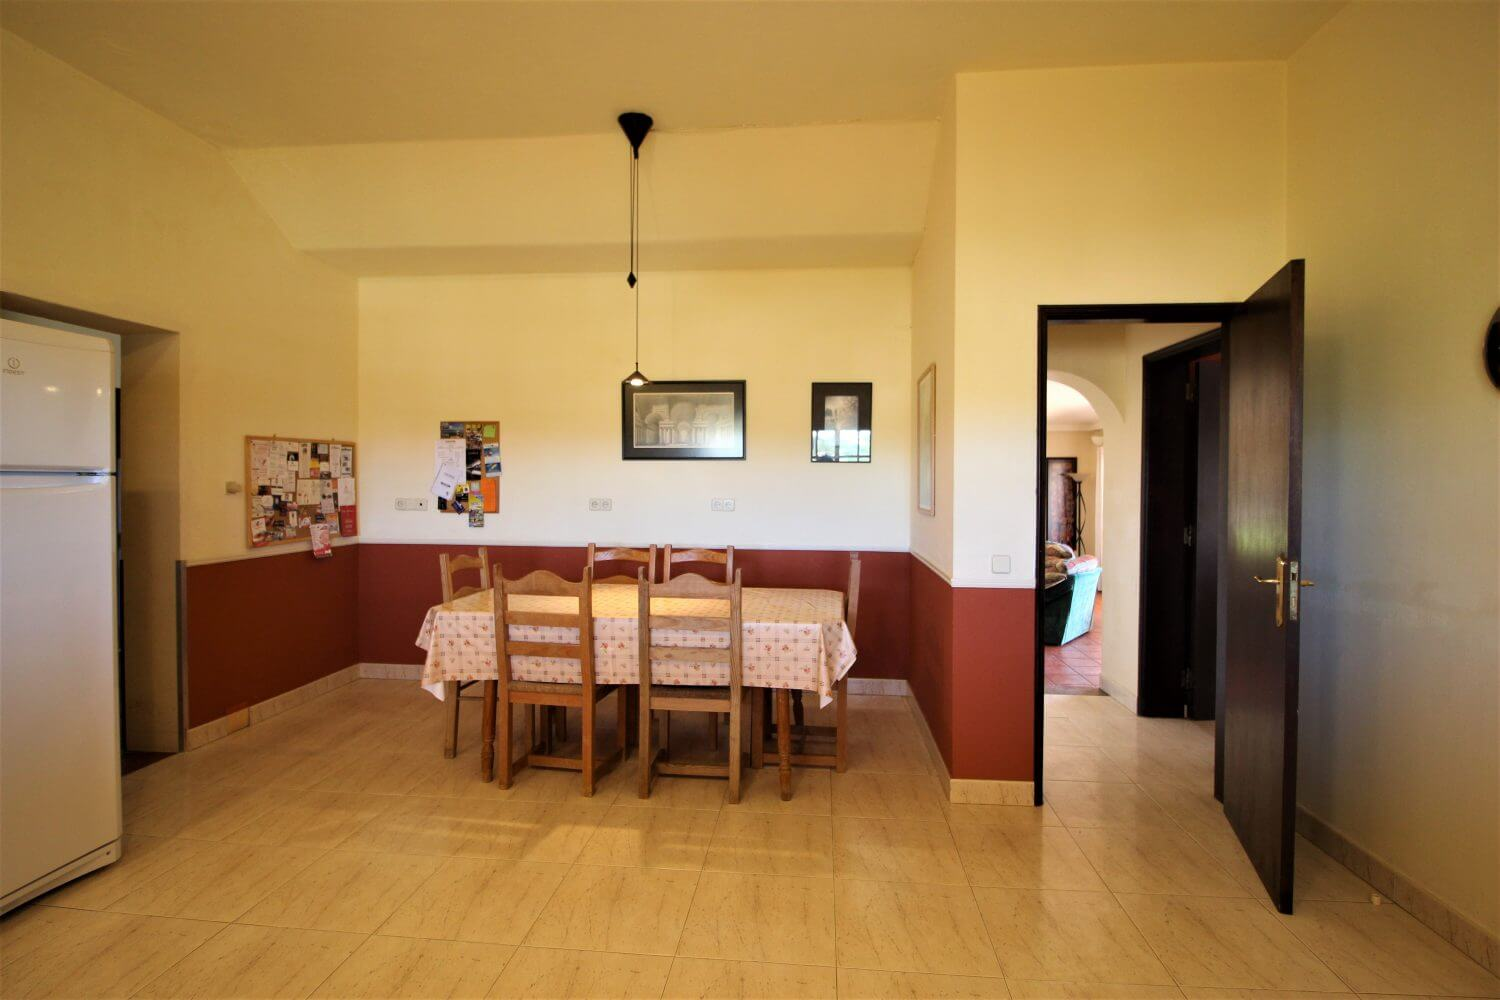 accessible kitchen, holiday villa for the disabled, Algarve Portugal